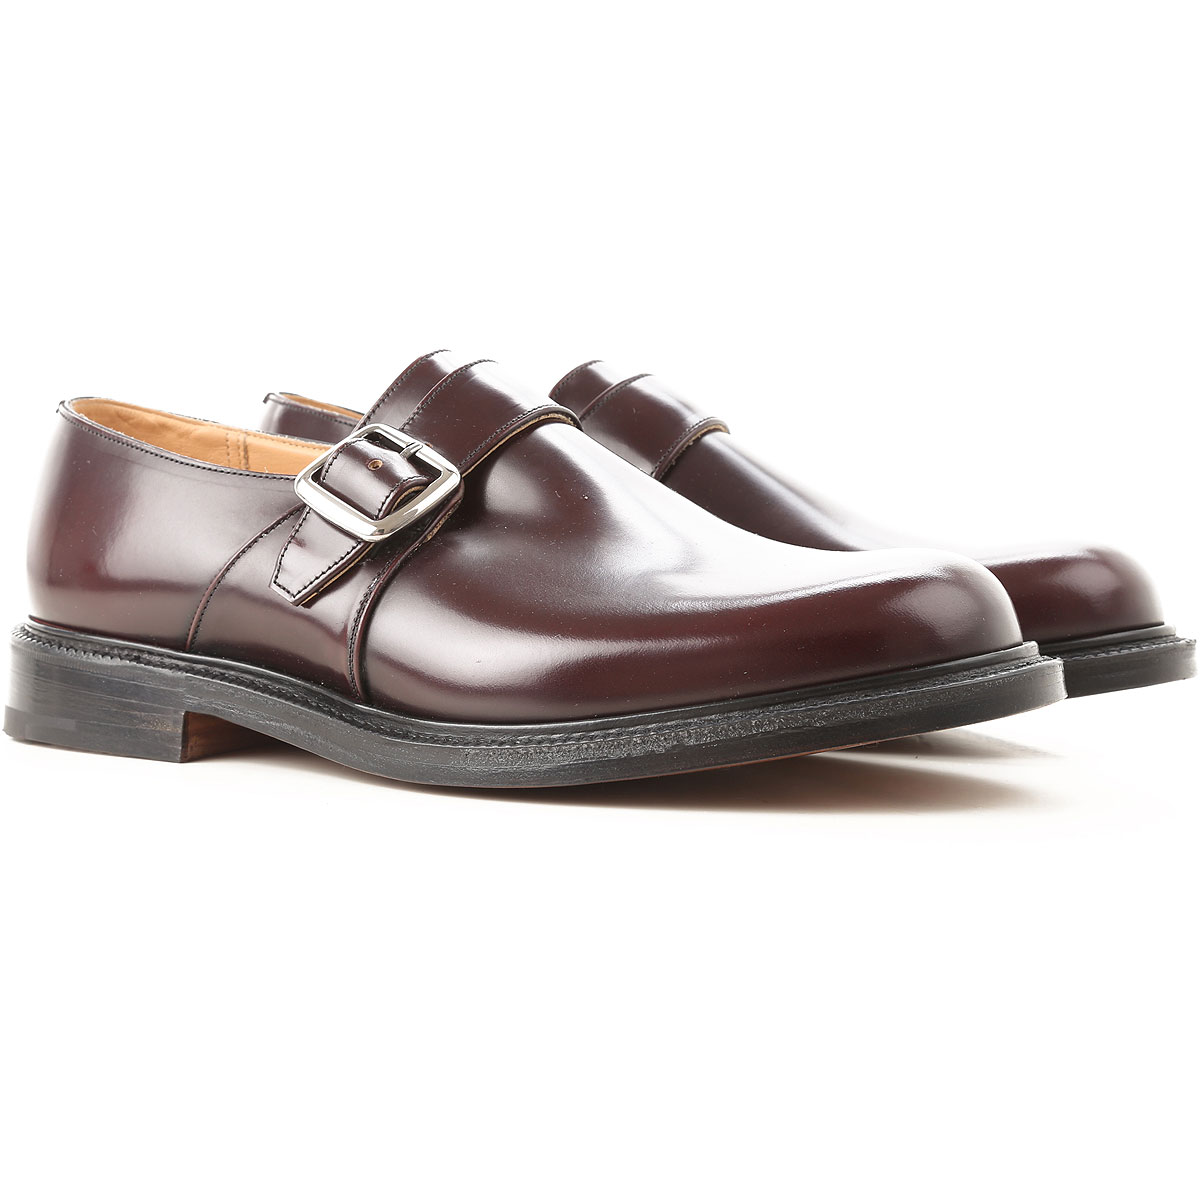 Image of Church's Monk Strap Shoes for Men, Burgundy, Leather, 2017, 10 10.5 7 7.5 8 8.5 9 9.5